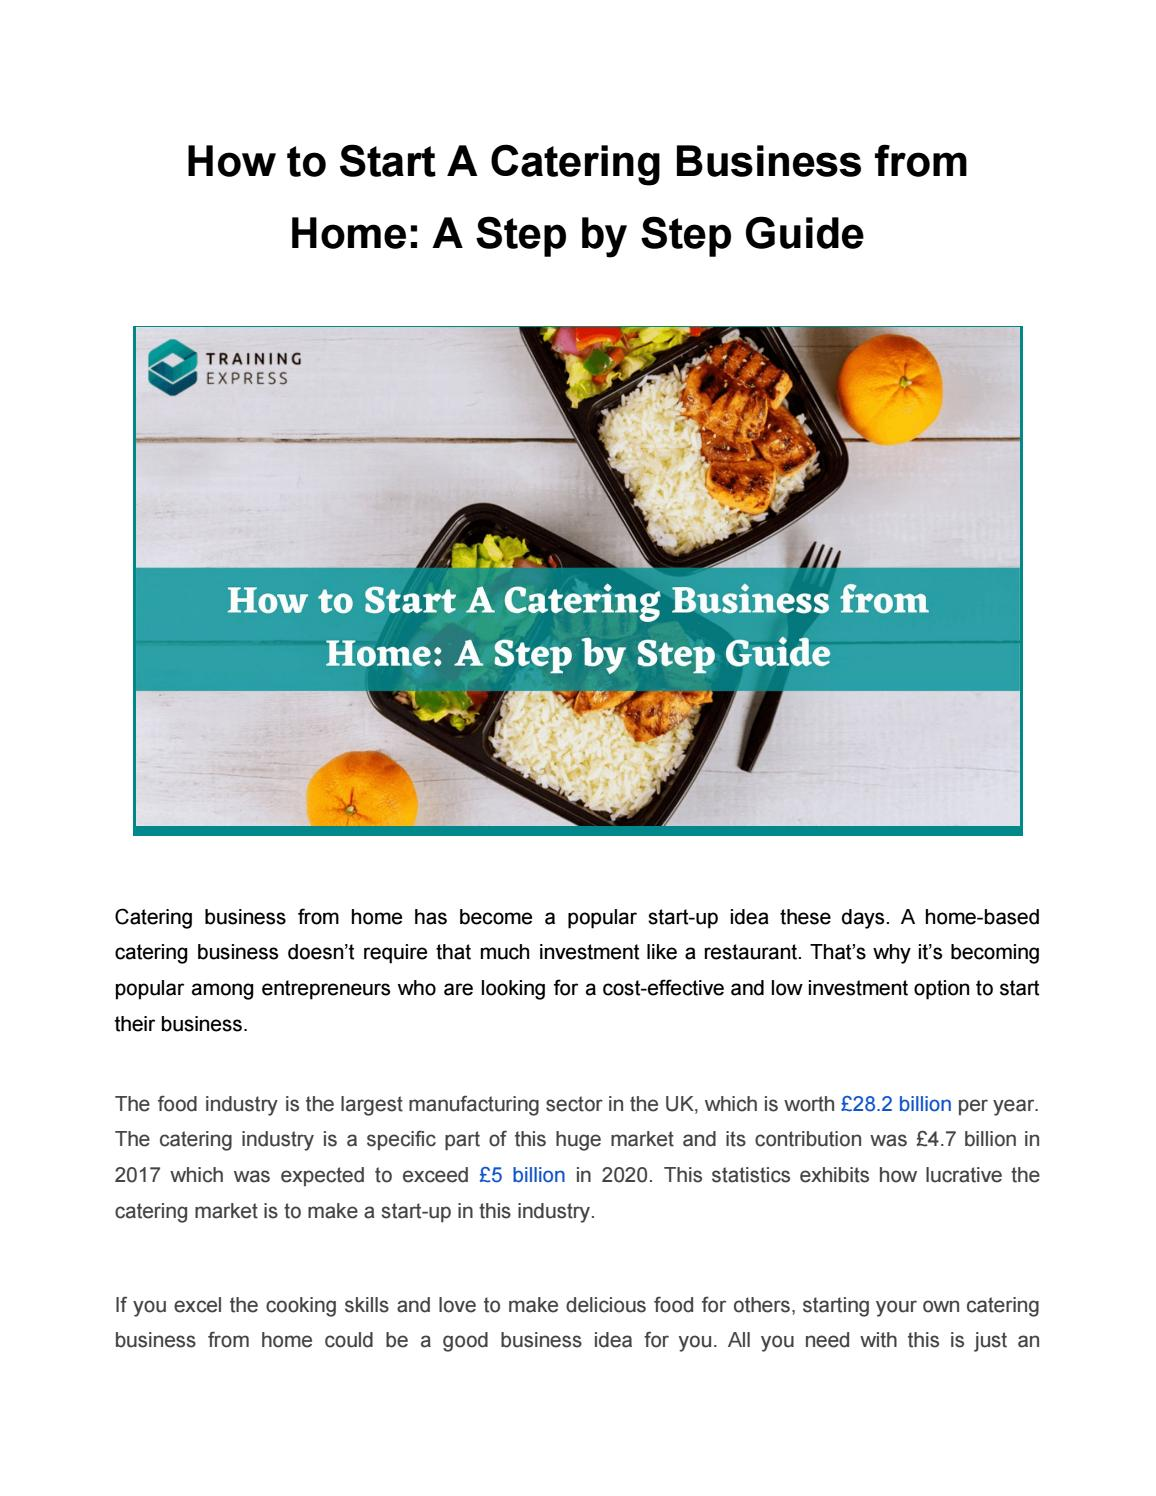 How To Start A Catering Business From